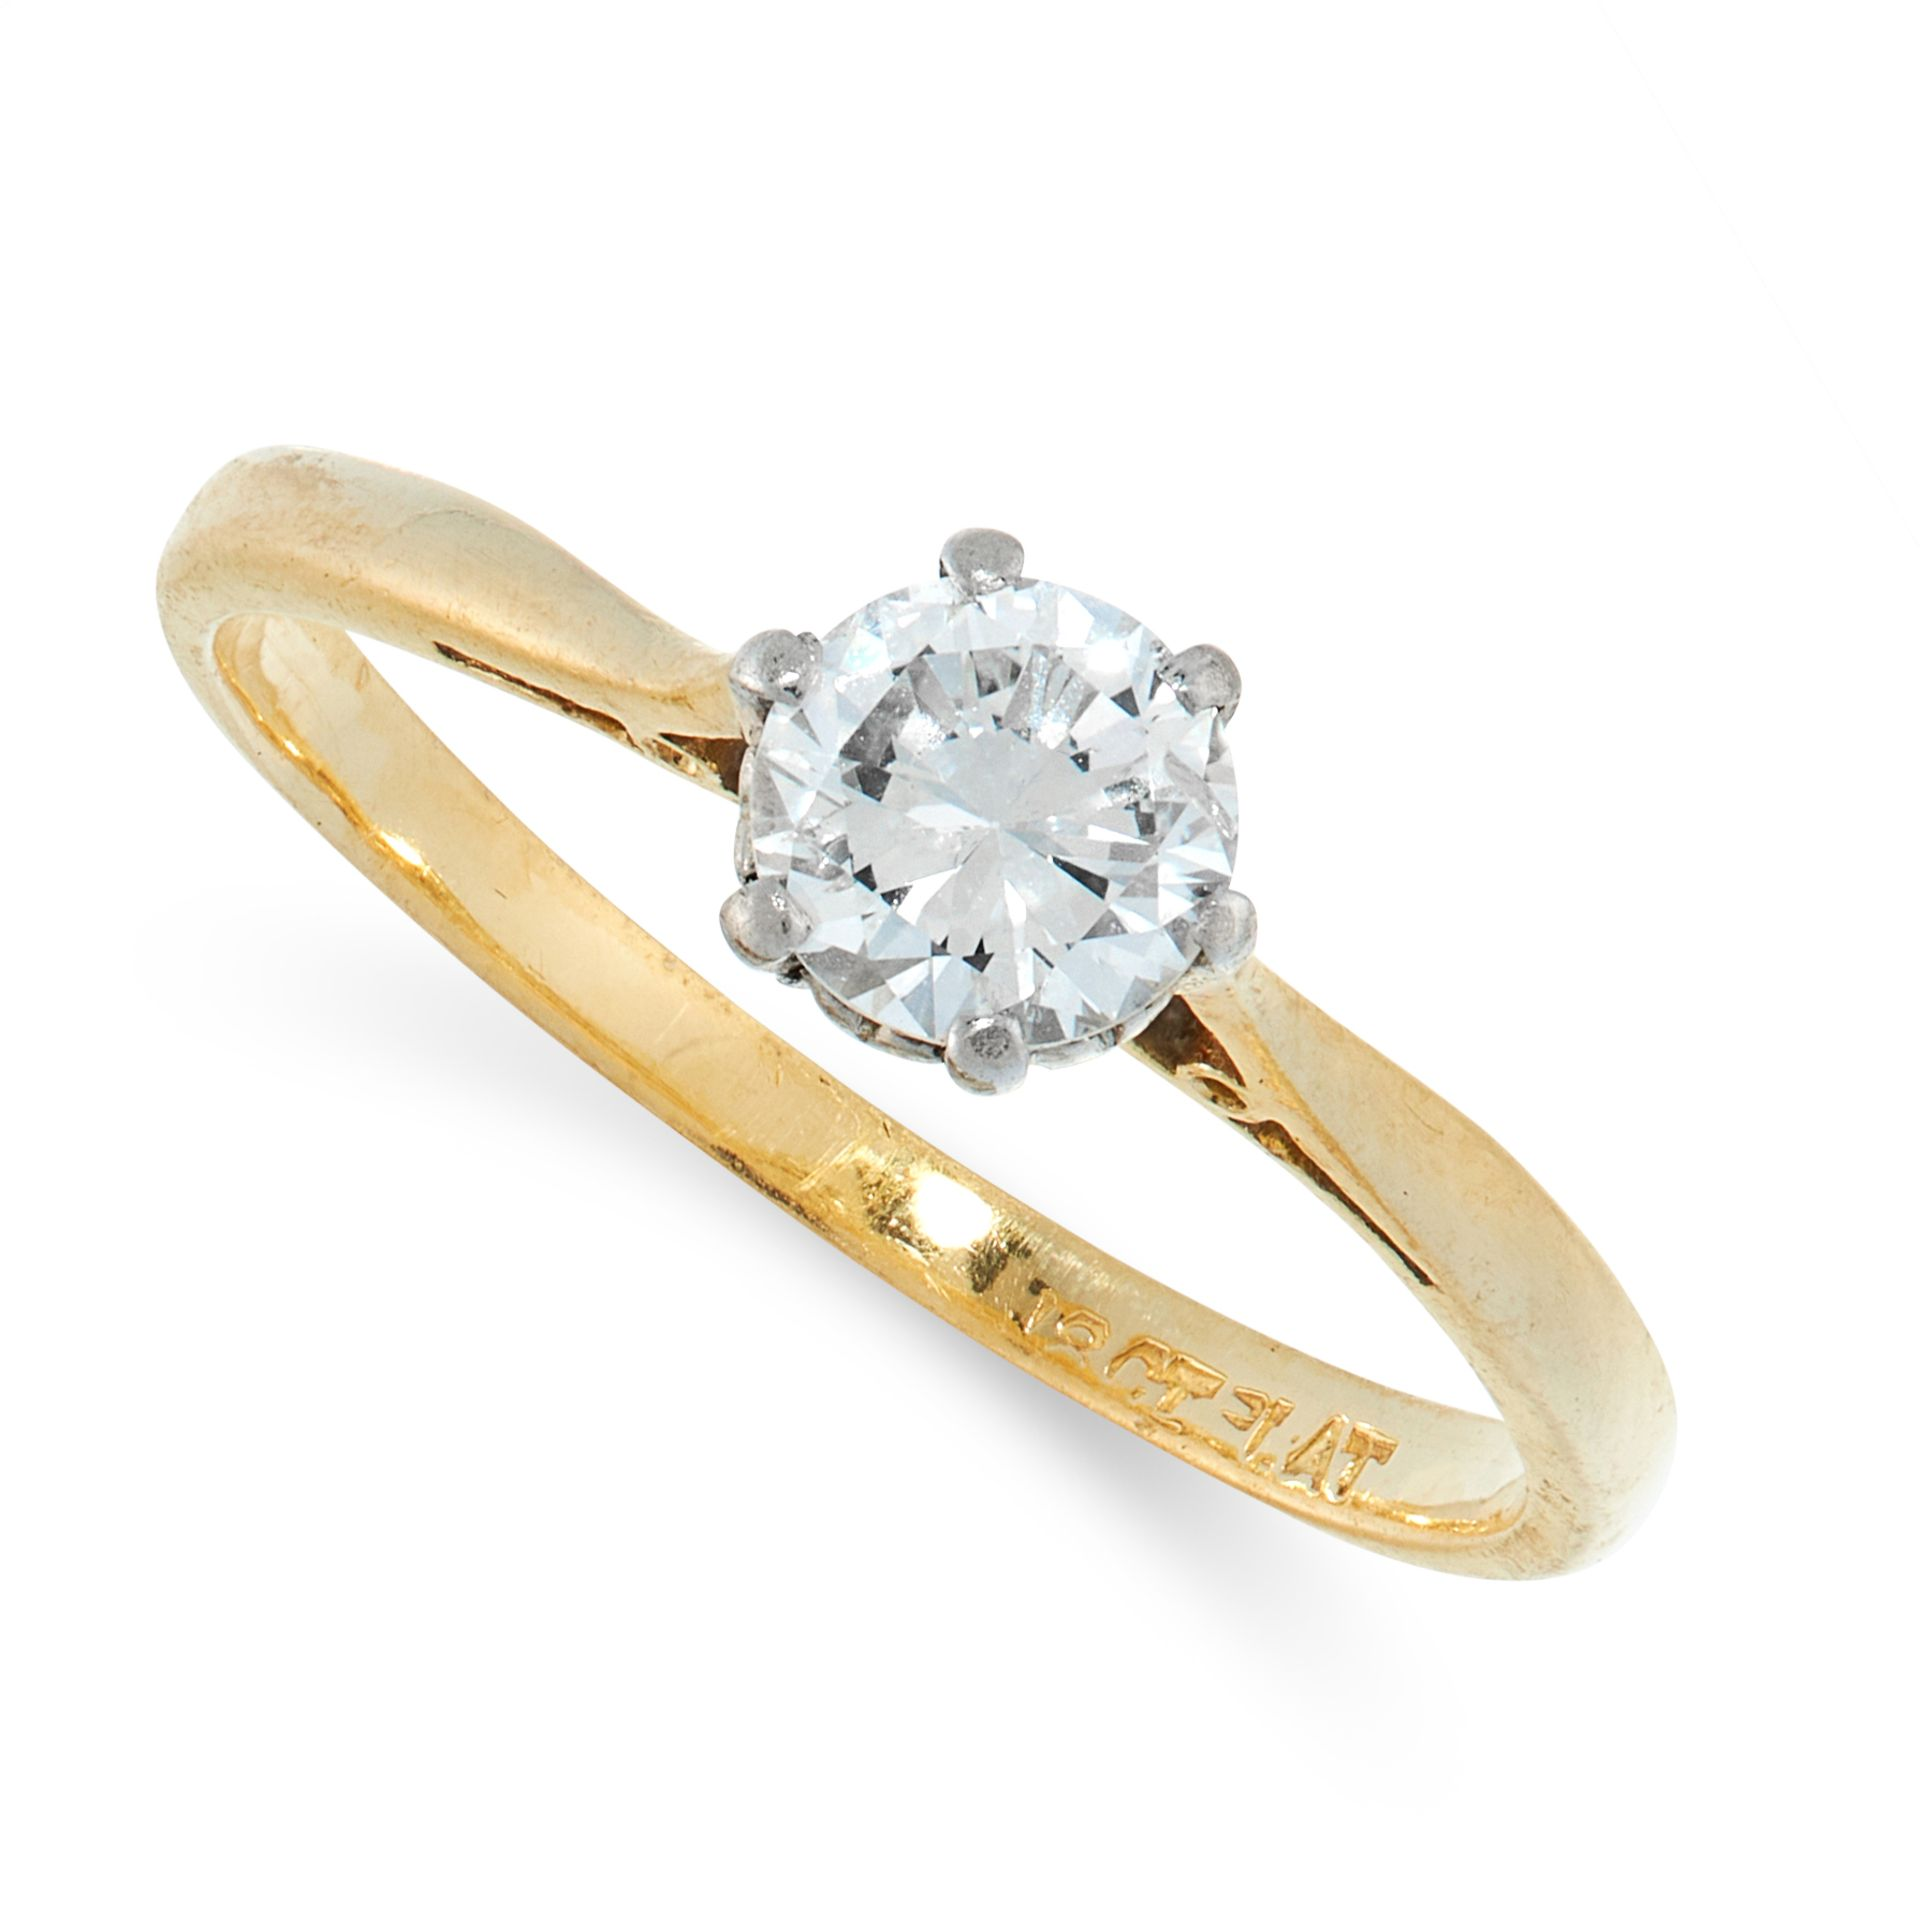 A SOLITAIRE DIAMOND ENGAGEMENT RING in 18ct yellow gold and platinum, set with a round cut diamond